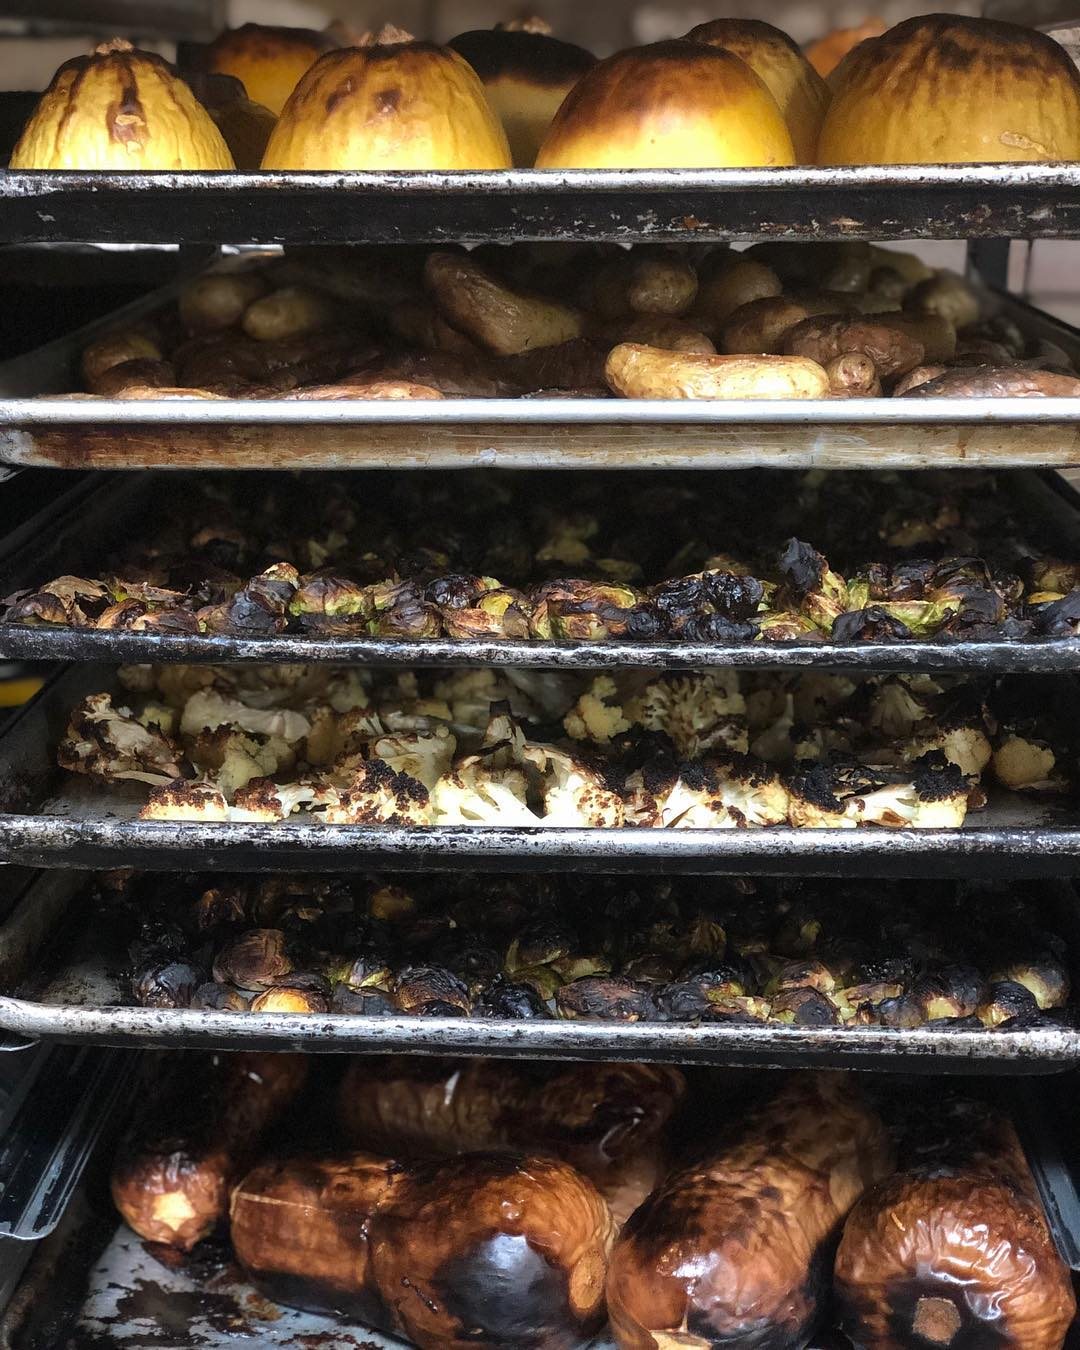 Burn baby burn, our veggies at Antique Bar and Bakery are nearly on FIRE!